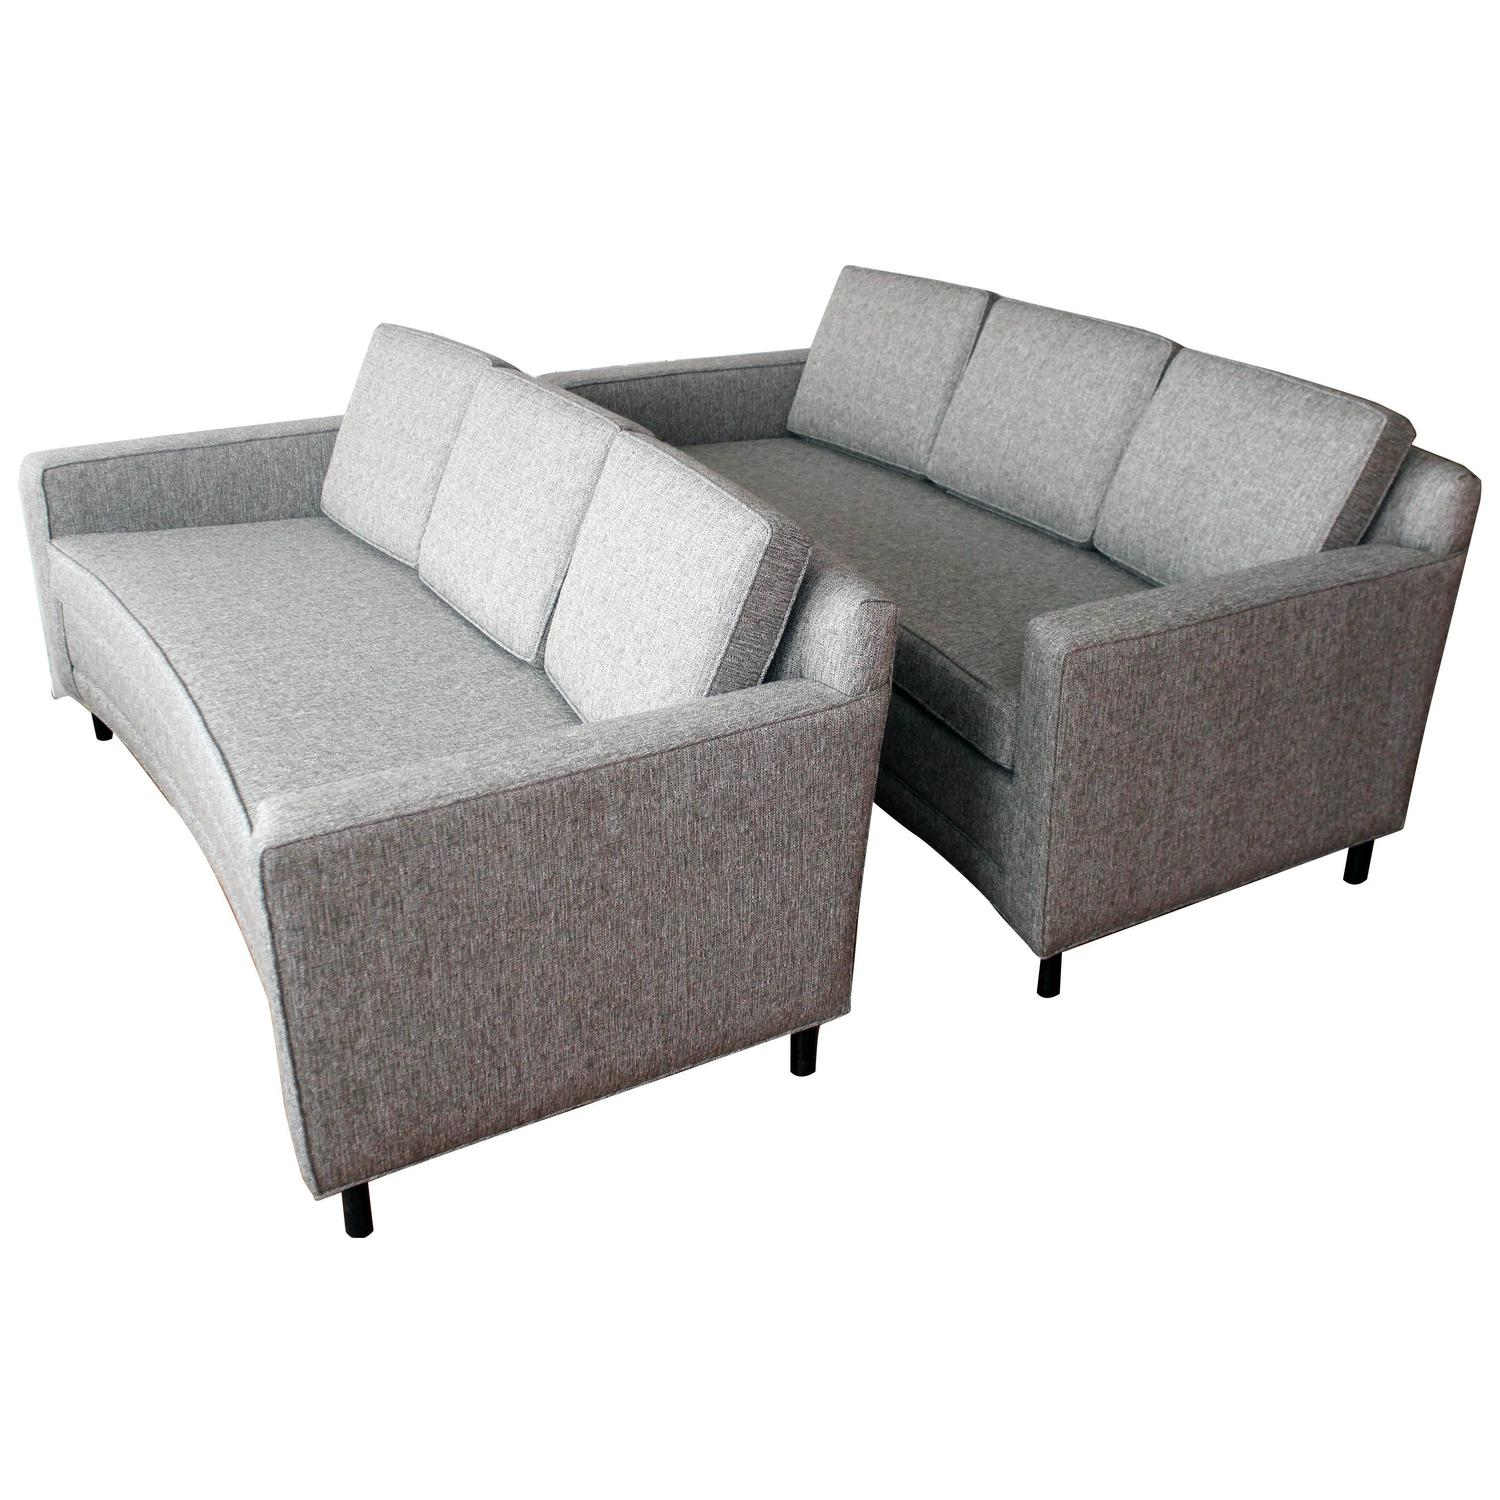 Curved Front Sofa Hereo Sofa